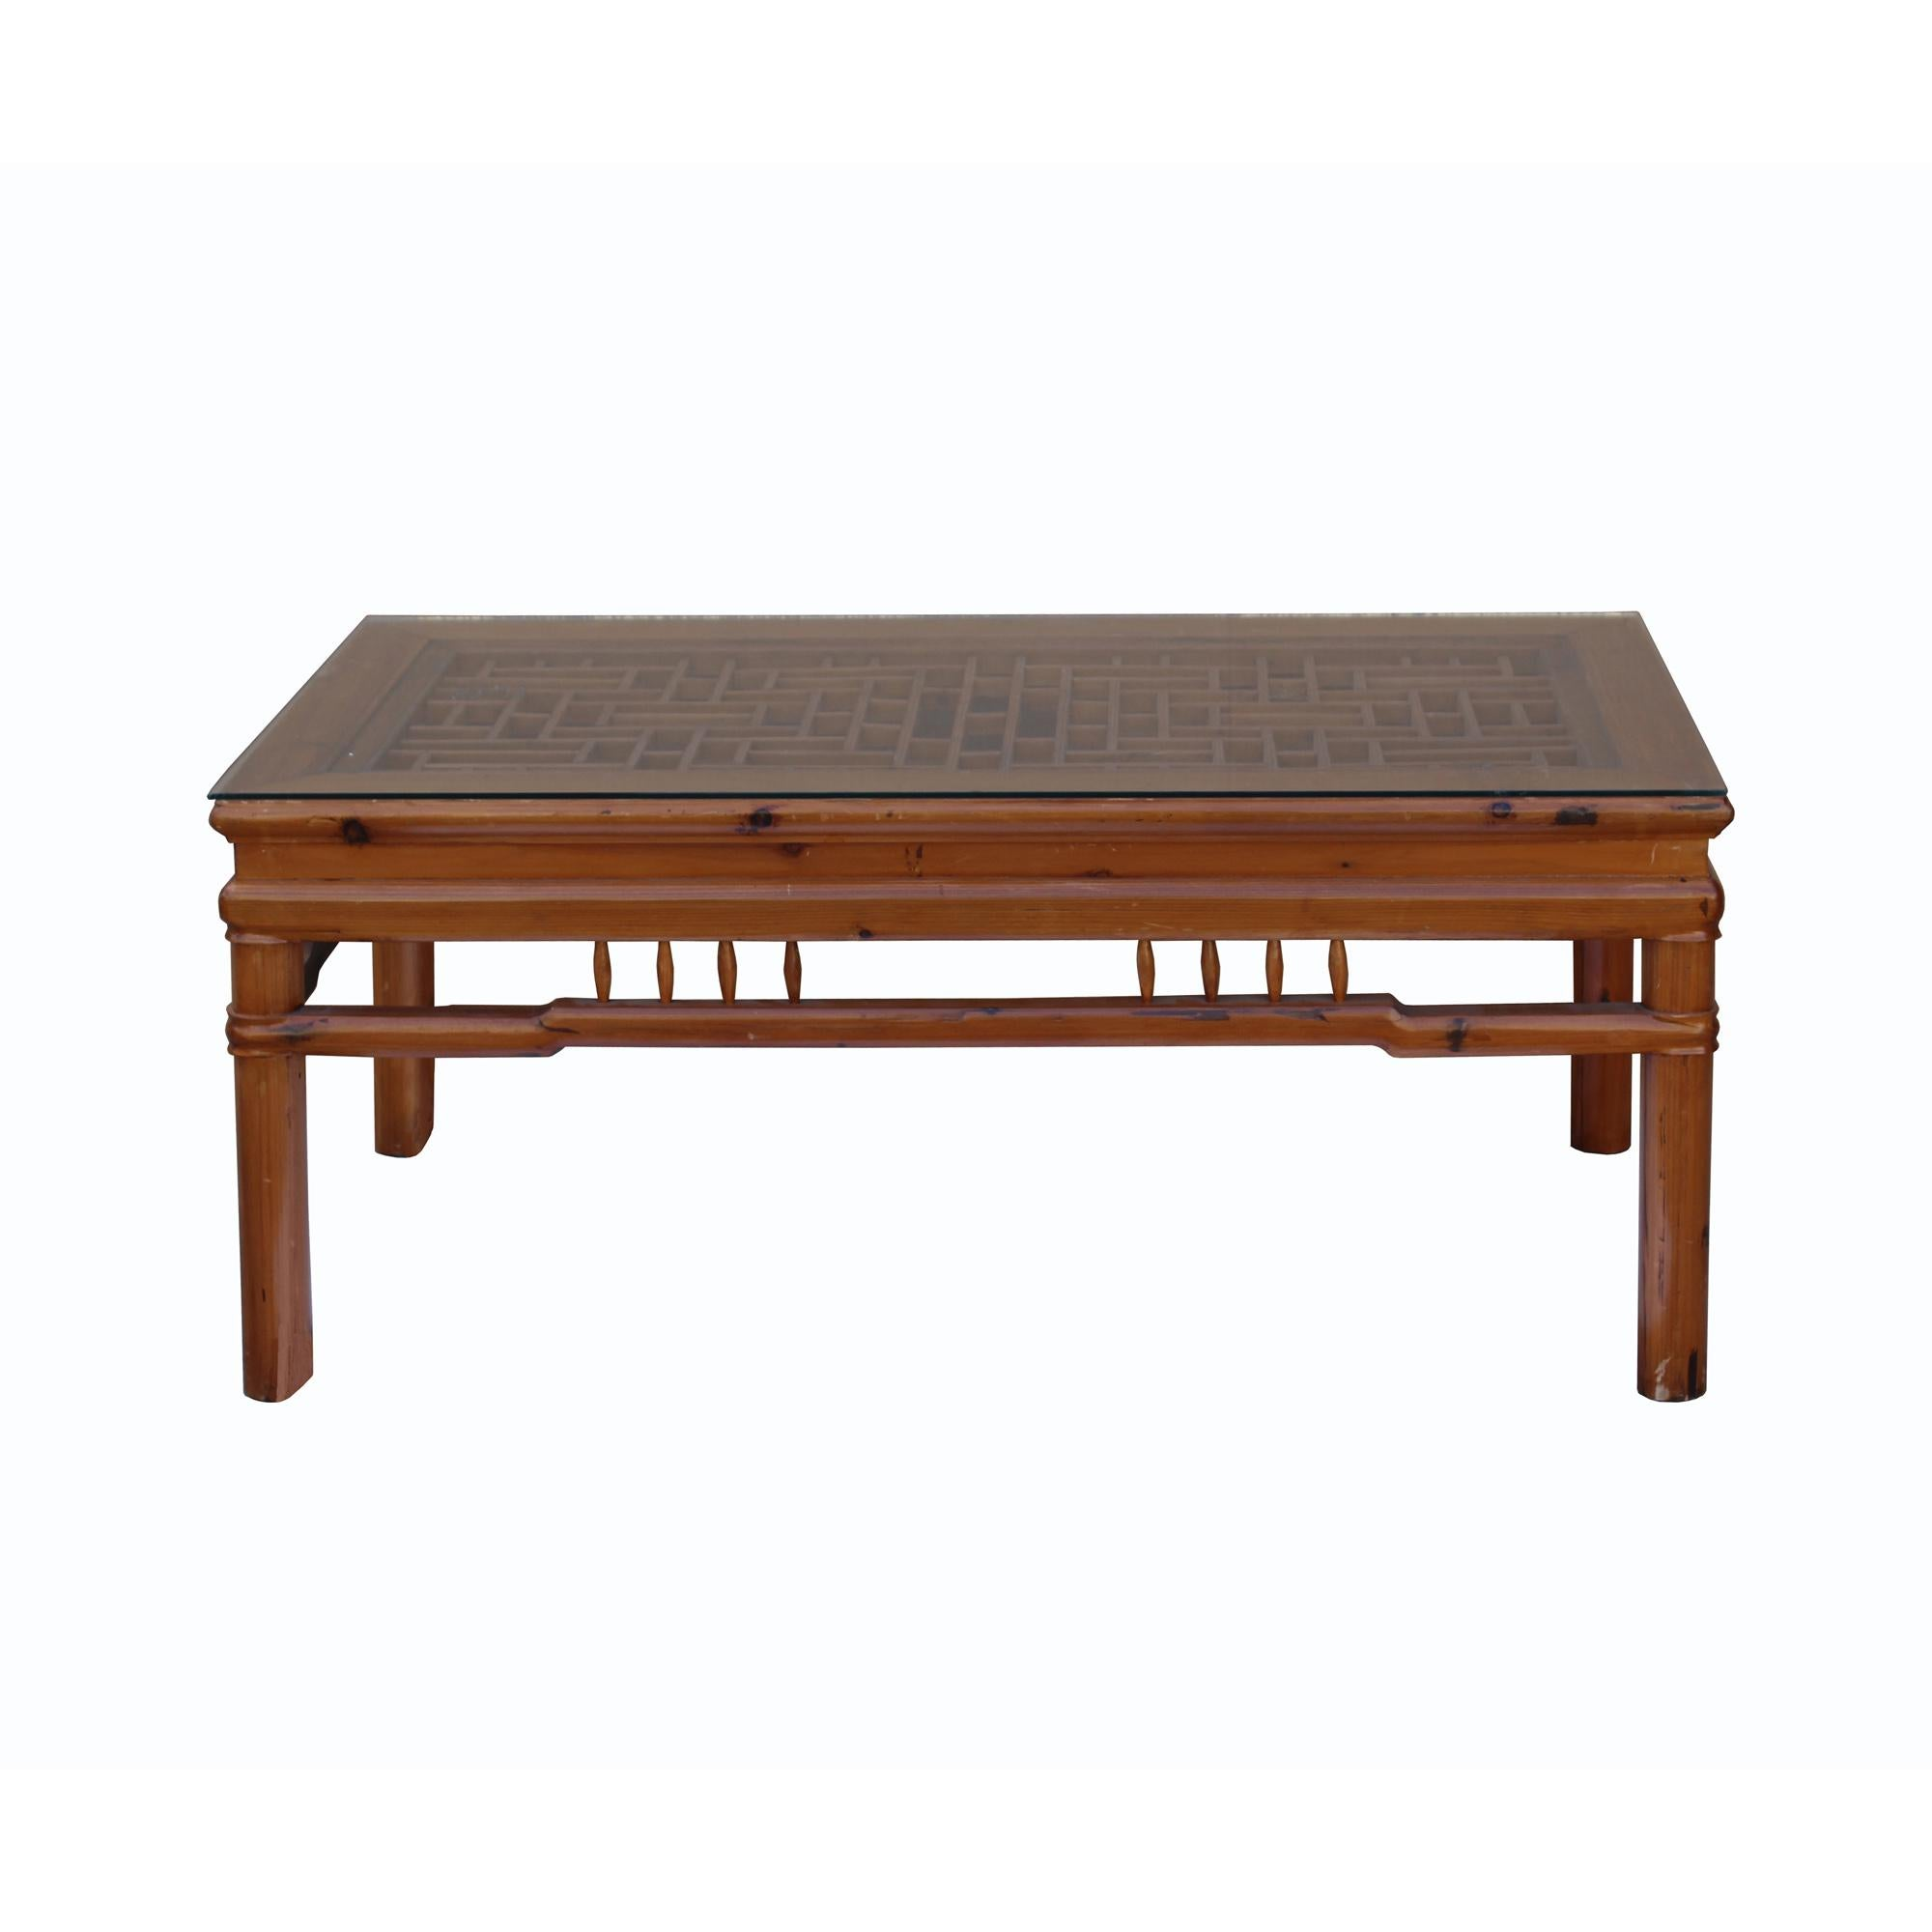 rectangular glass top coffee table with chinese old windows panel design